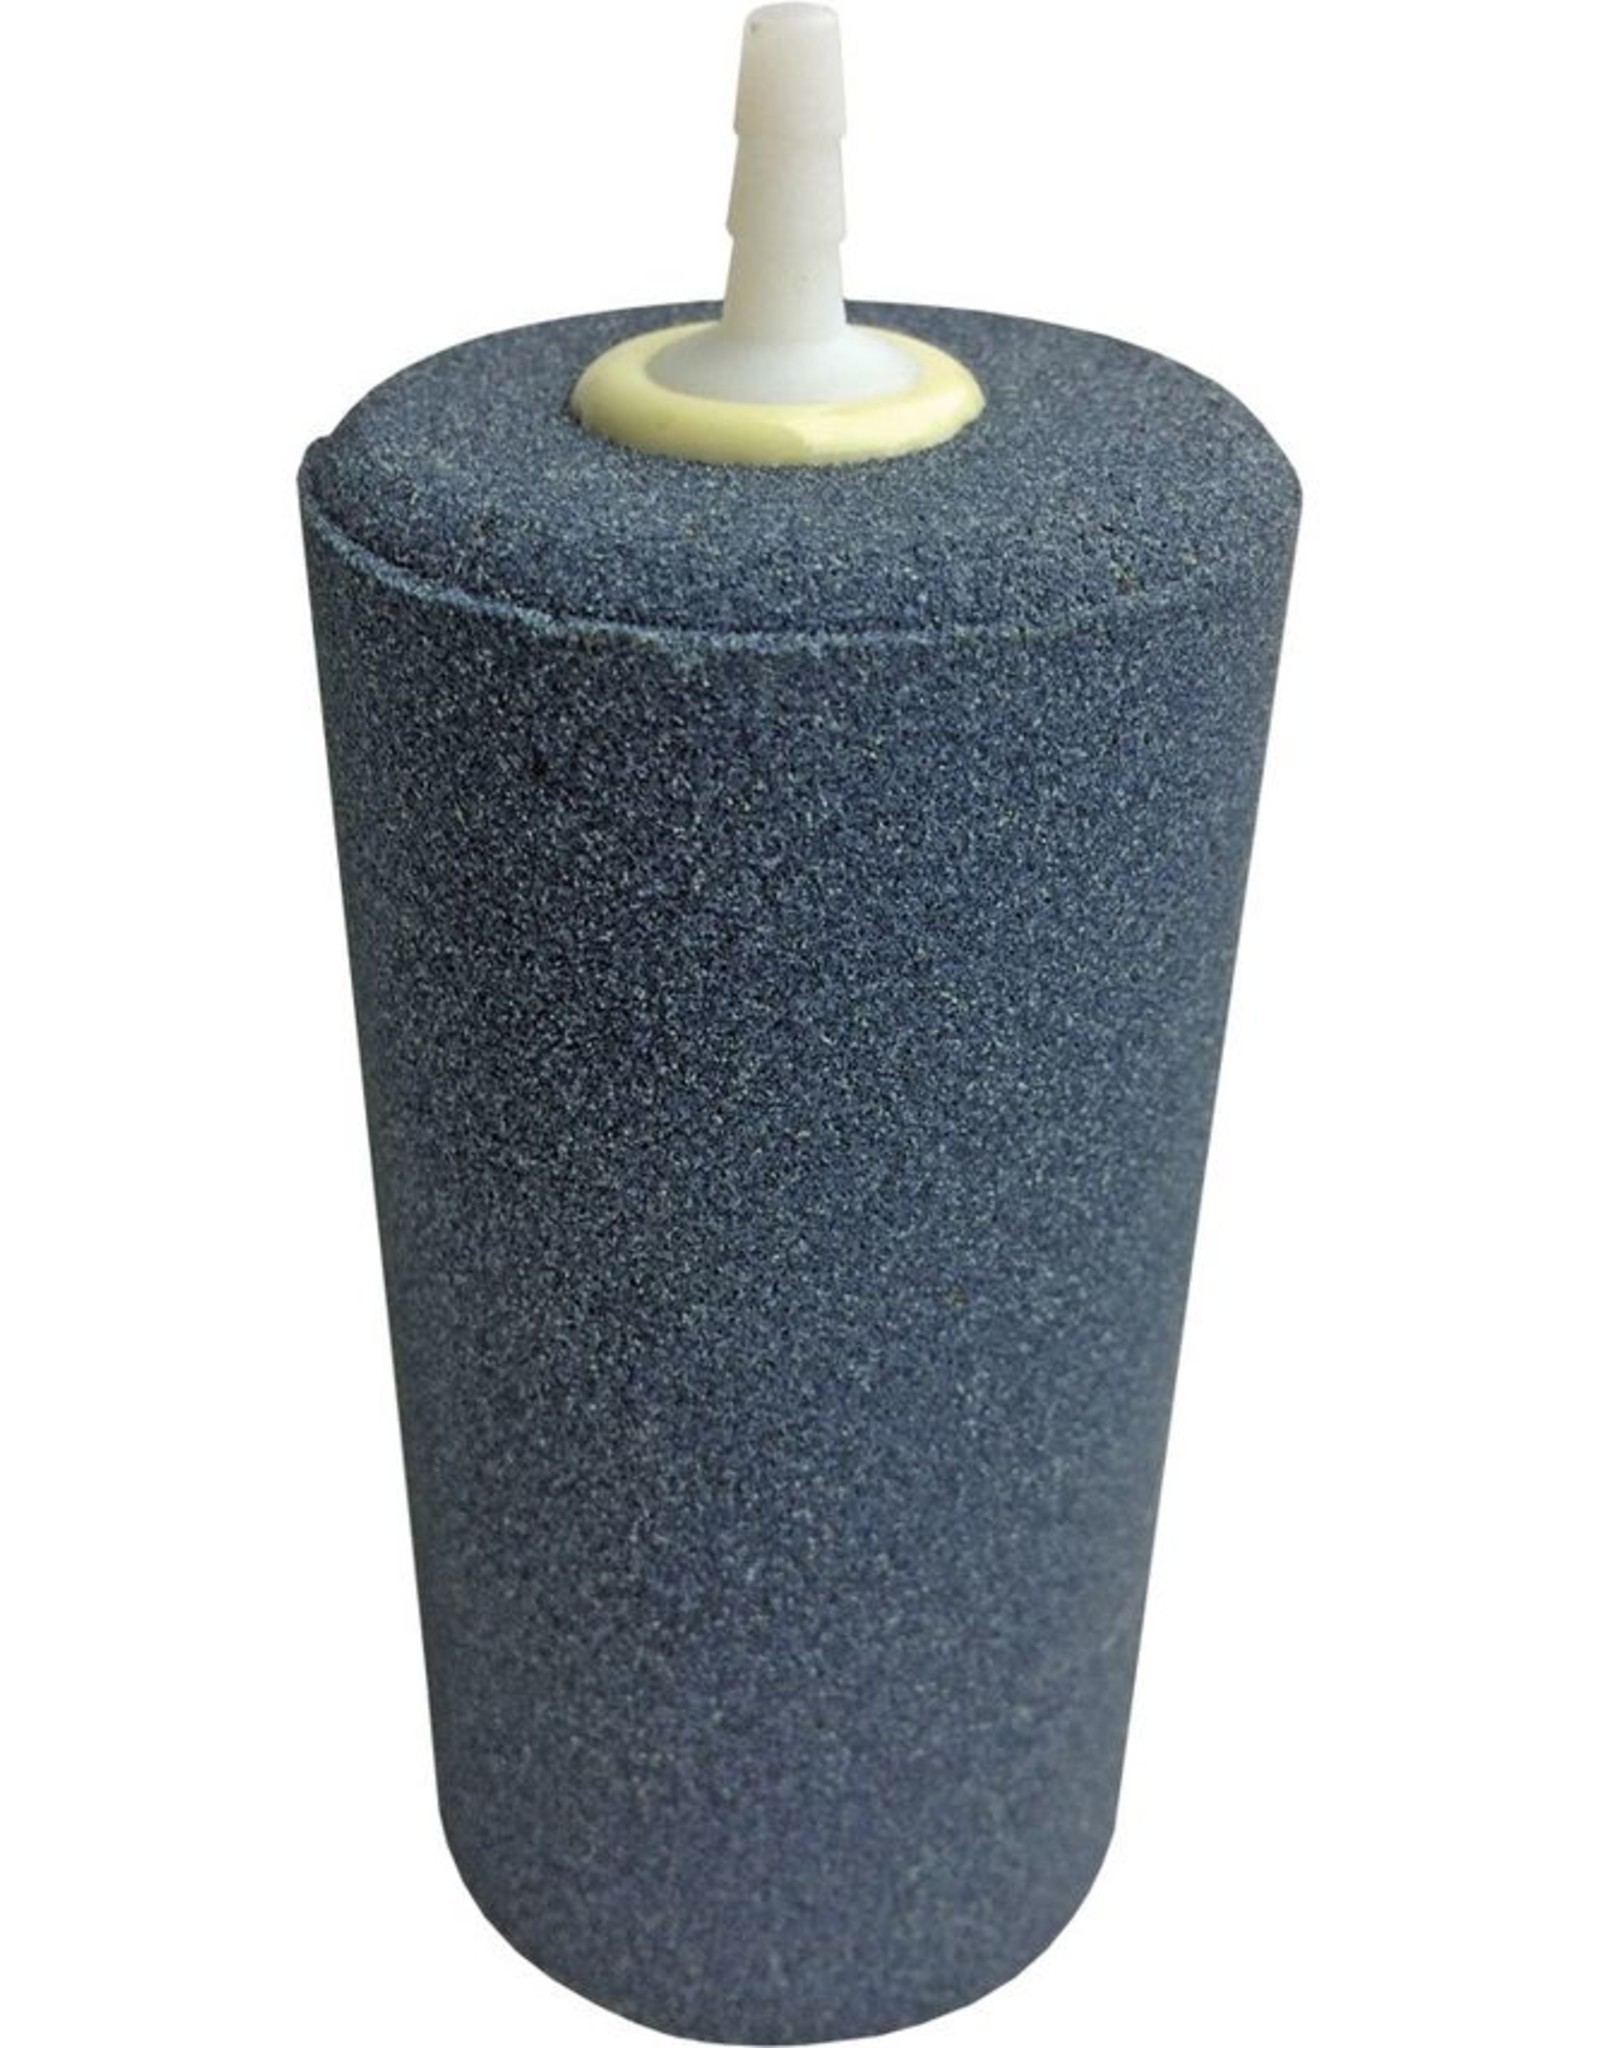 ACTIVE AQUA Air Stone Cylinder, Large